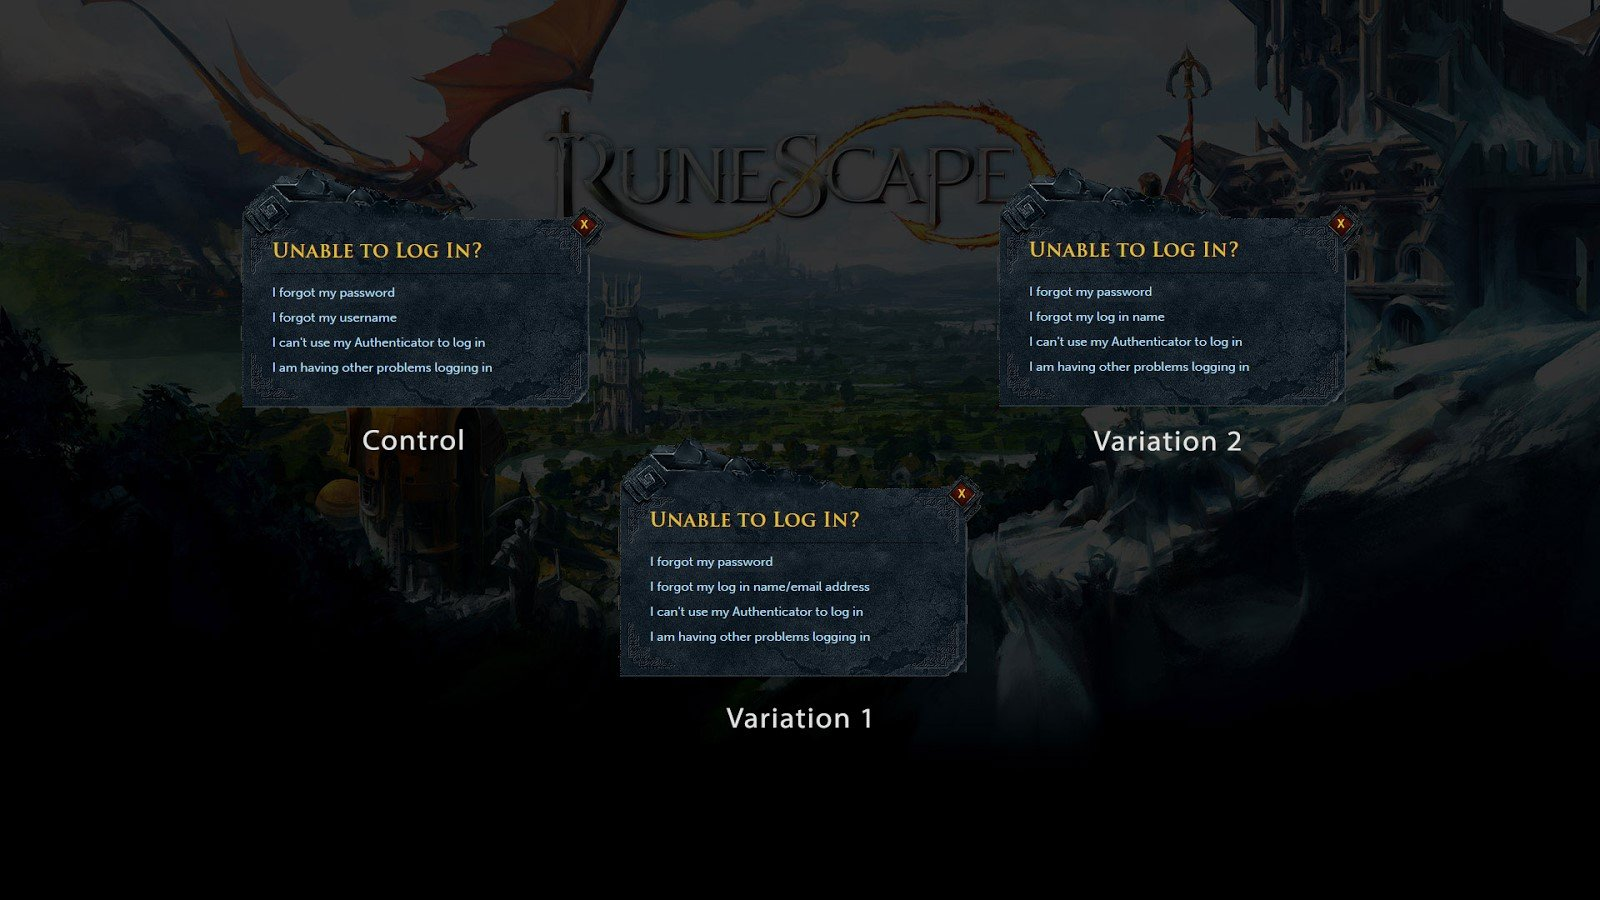 5 Ab Tests Jagex Aced To Skyrocket Conversions For Runescape